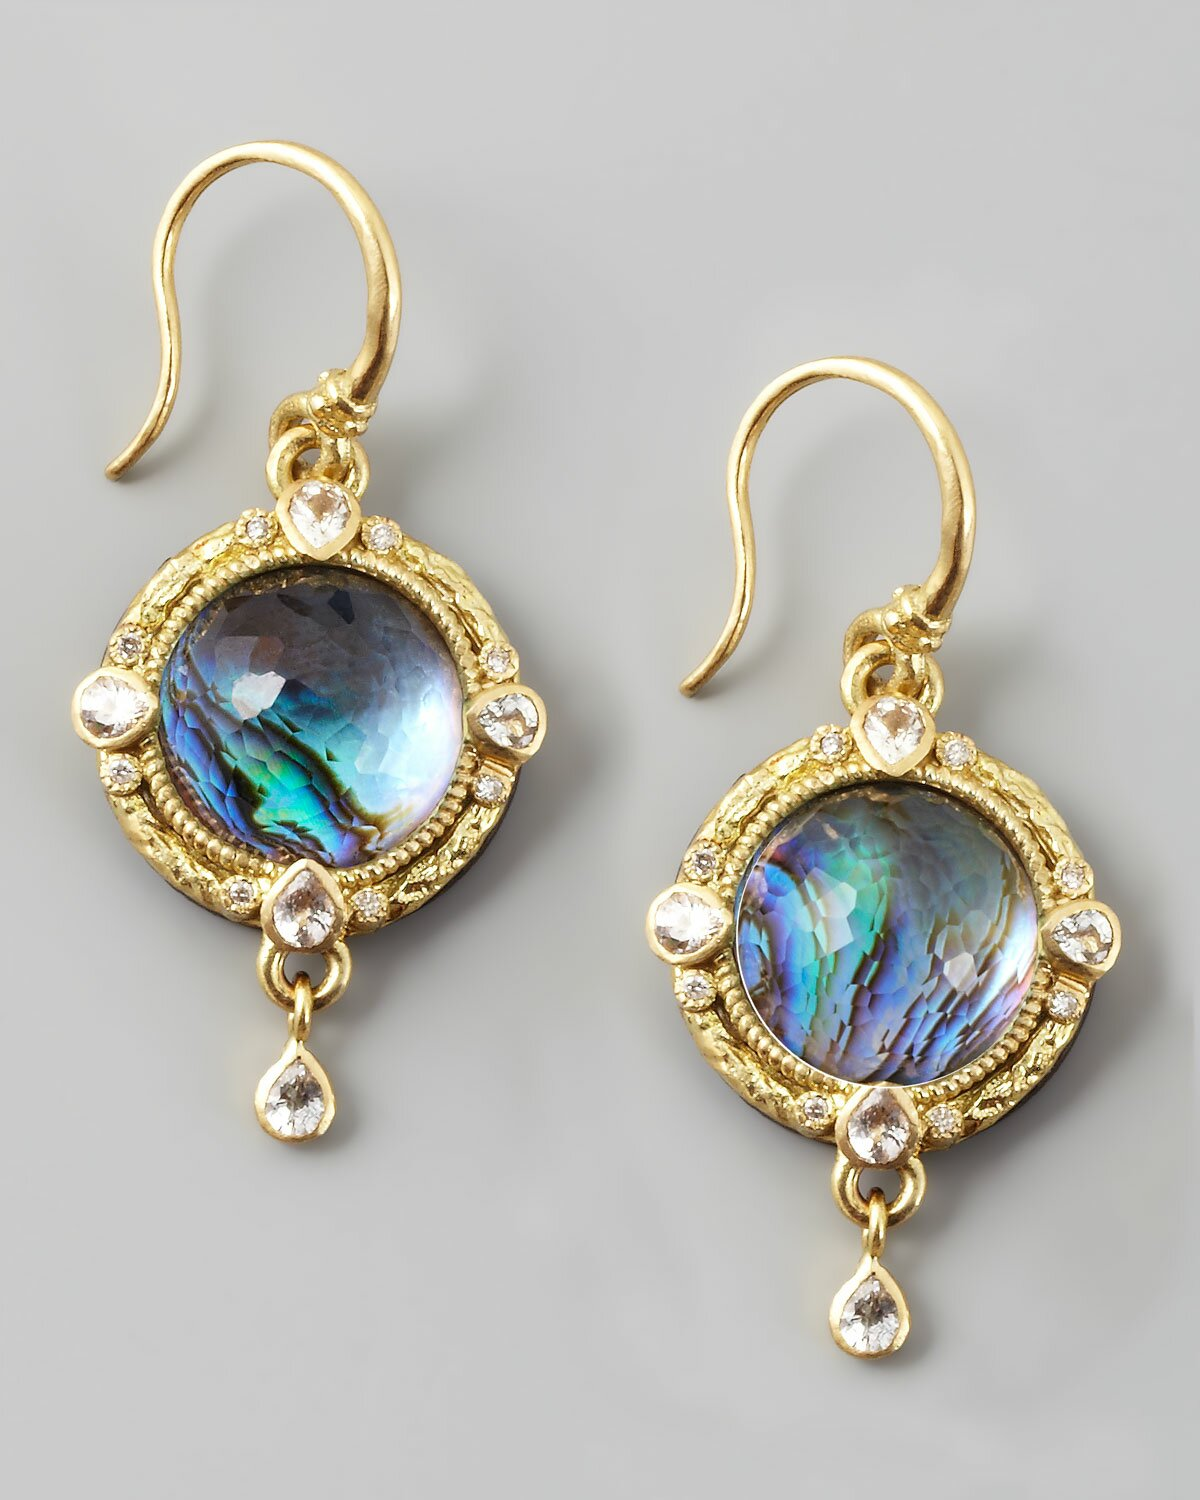 Earrings For Women. Accessories are often what make an outfit stand out and this is true when it comes to earrings for women. This accessories are very versatile since they can easily stand out if a woman desires, or they can be discreetly hidden.